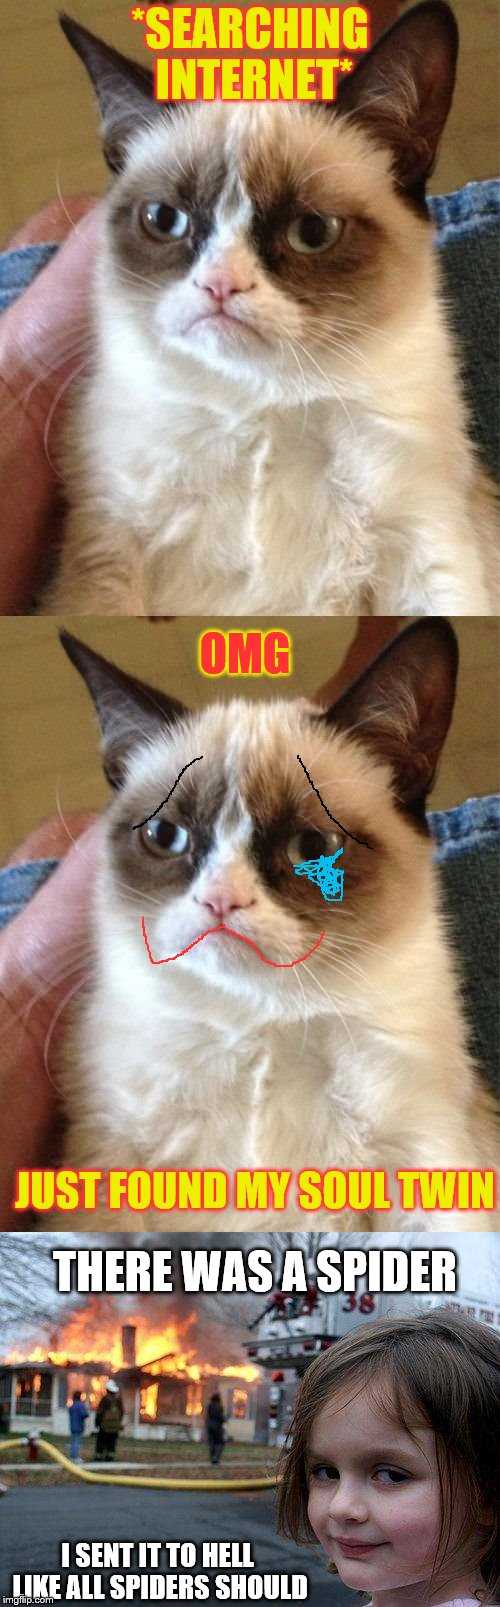 grumpy cat's soul twin | *SEARCHING INTERNET* OMG JUST FOUND MY SOUL TWIN THERE WAS A SPIDER I SENT IT TO HELL LIKE ALL SPIDERS SHOULD | image tagged in grumpy cat | made w/ Imgflip meme maker